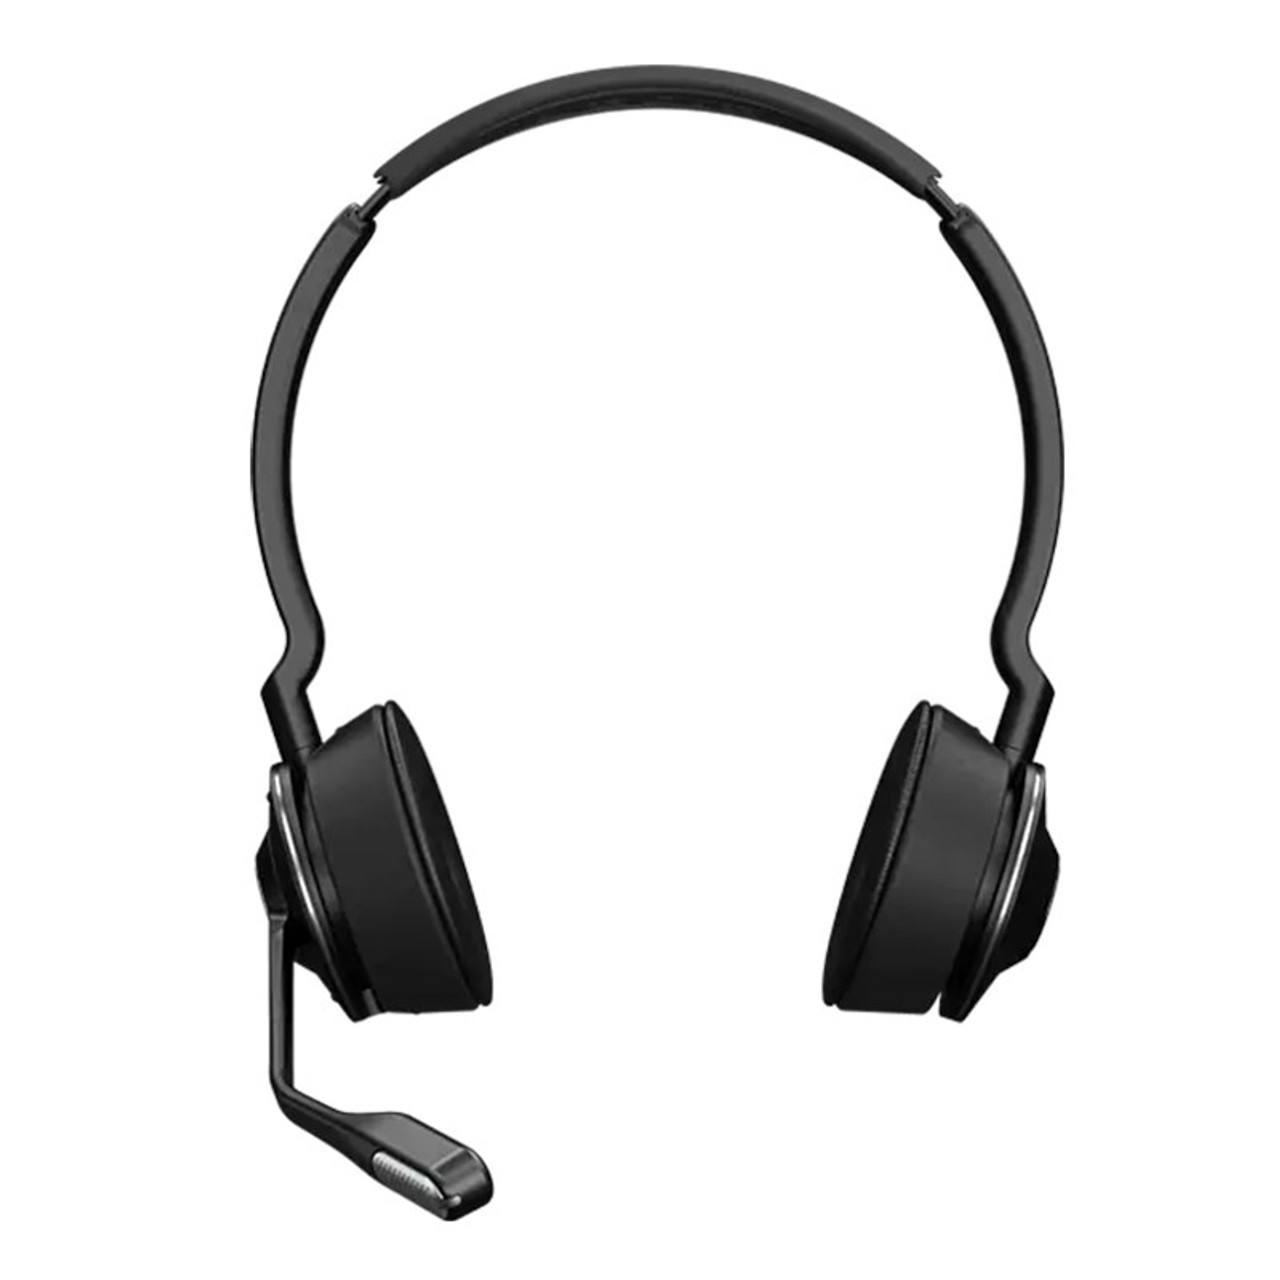 Image for Jabra Engage Stereo Replacement Headset CX Computer Superstore